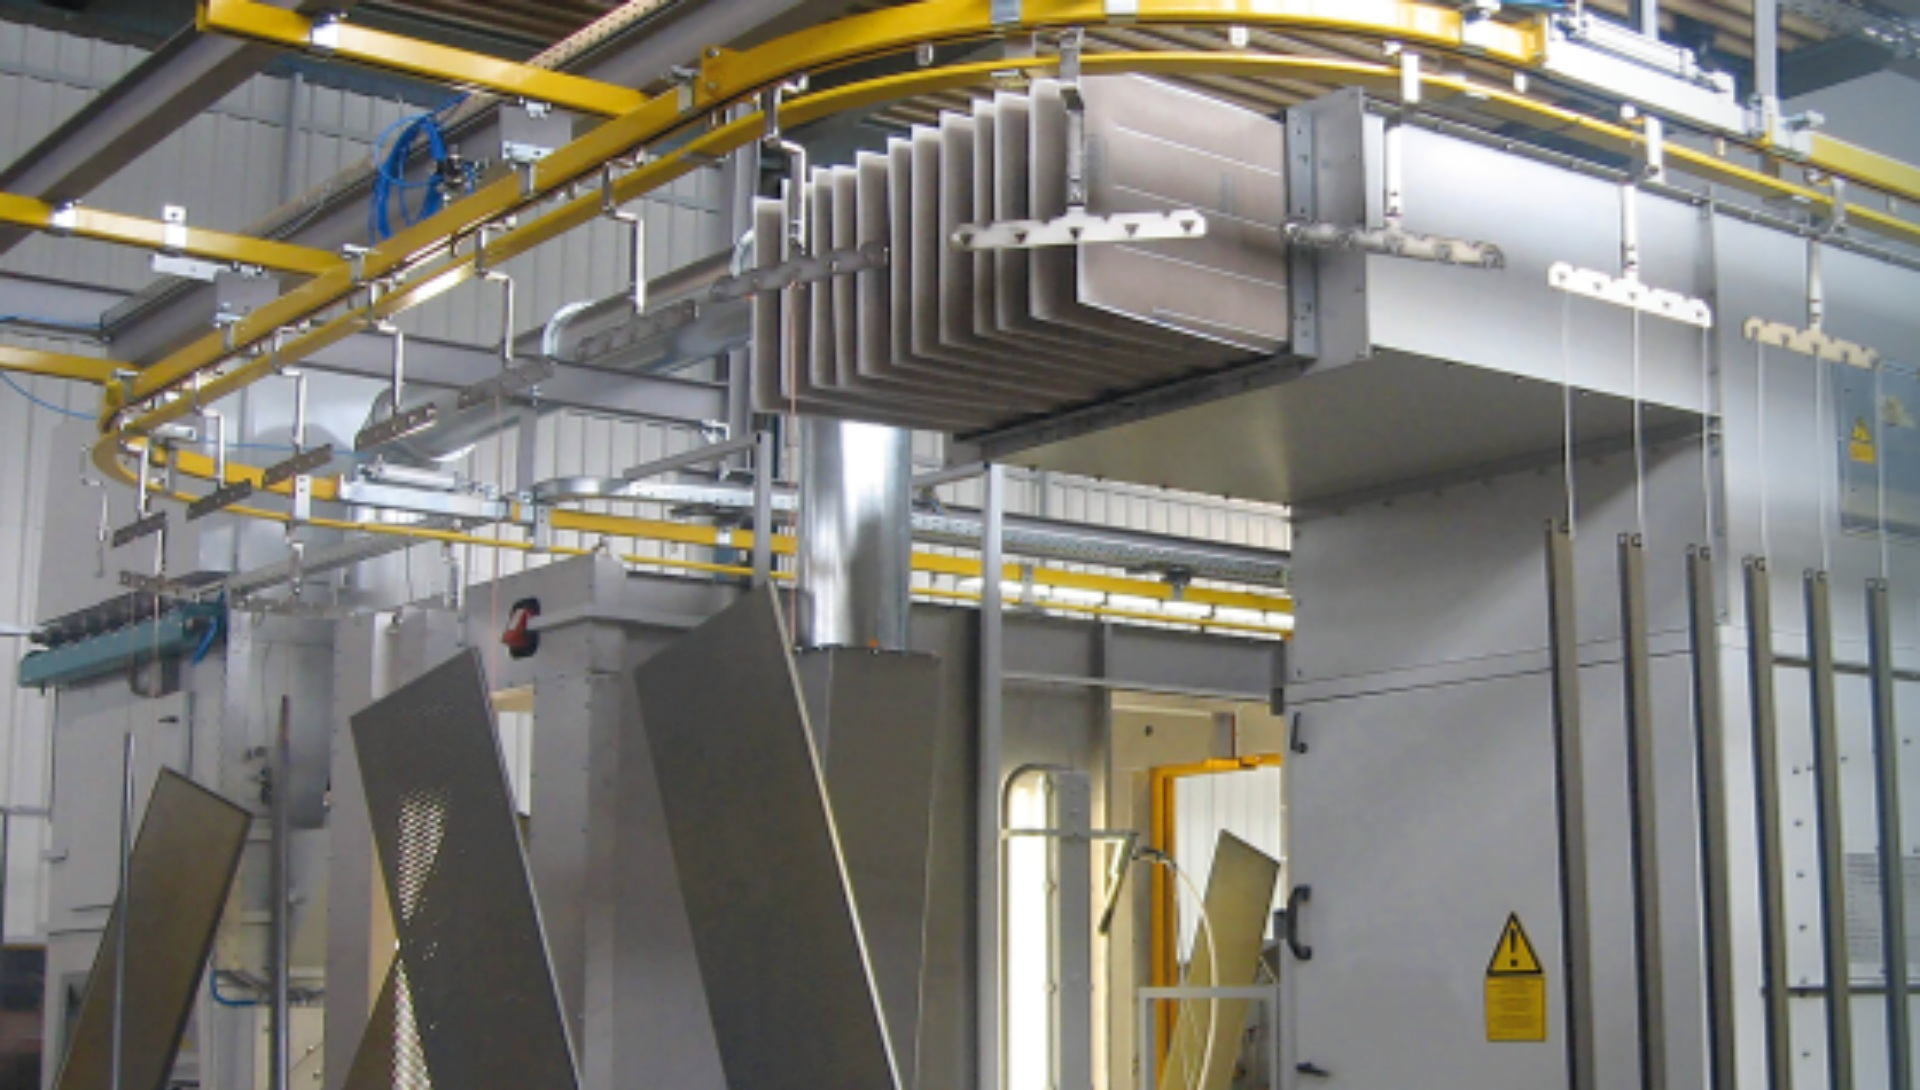 Axel Johnson International has acquired Caldan Conveyor